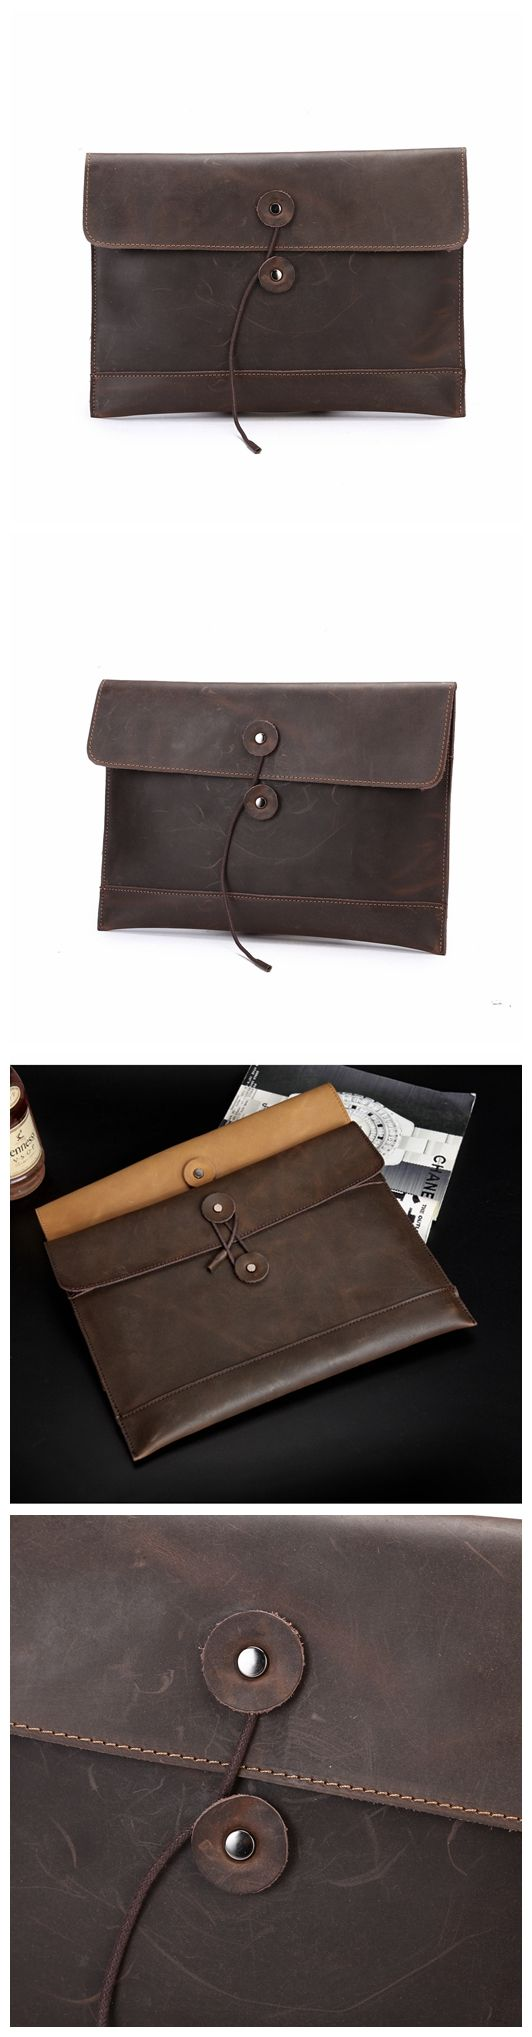 Handmade Brown Leather Wallet Leather Purse